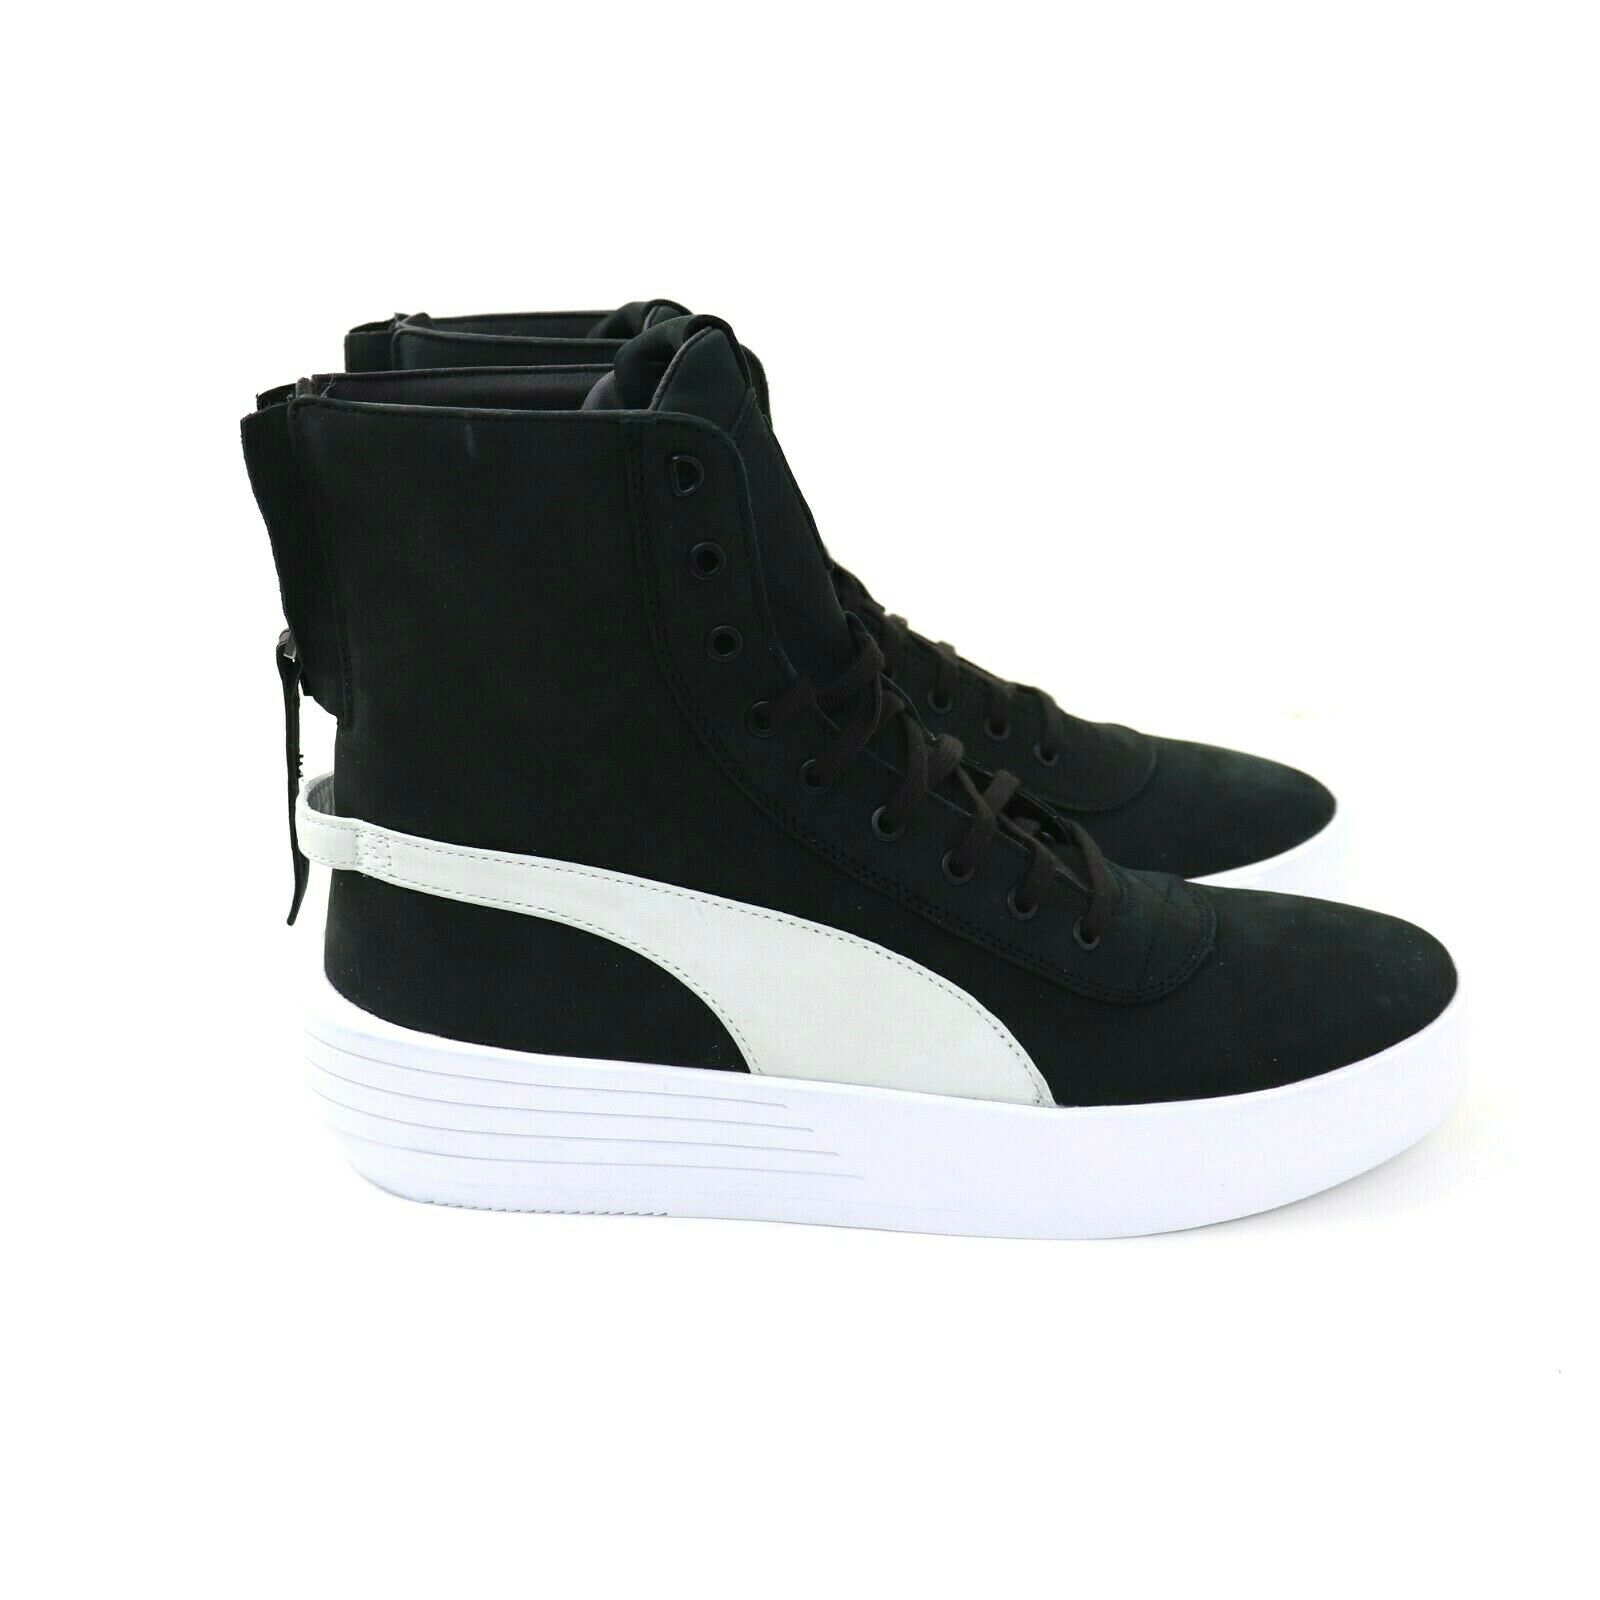 Puma XO Size 10 Parallel Black White The Weeknd 365039 05 Mens shoes New